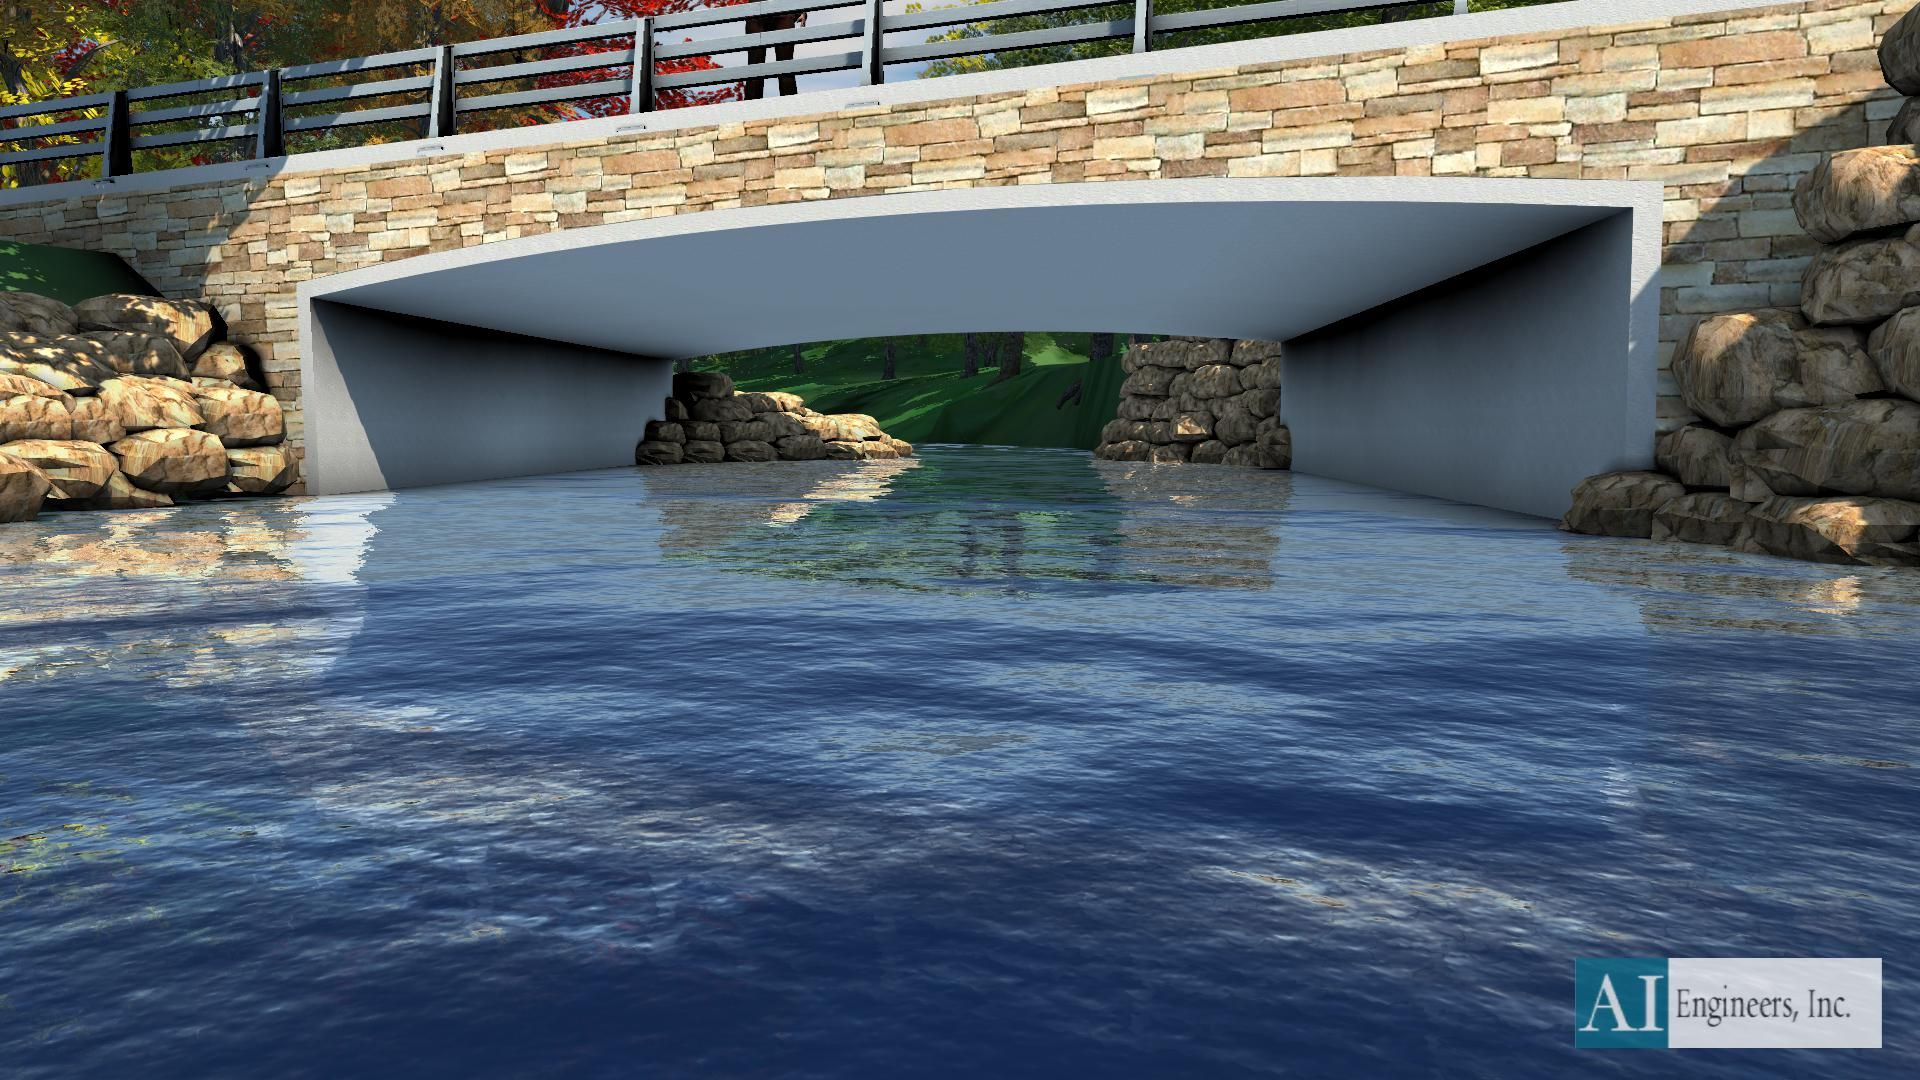 2563-westport-ct---w-sidewalk-underside-of-bridge-3500-3500